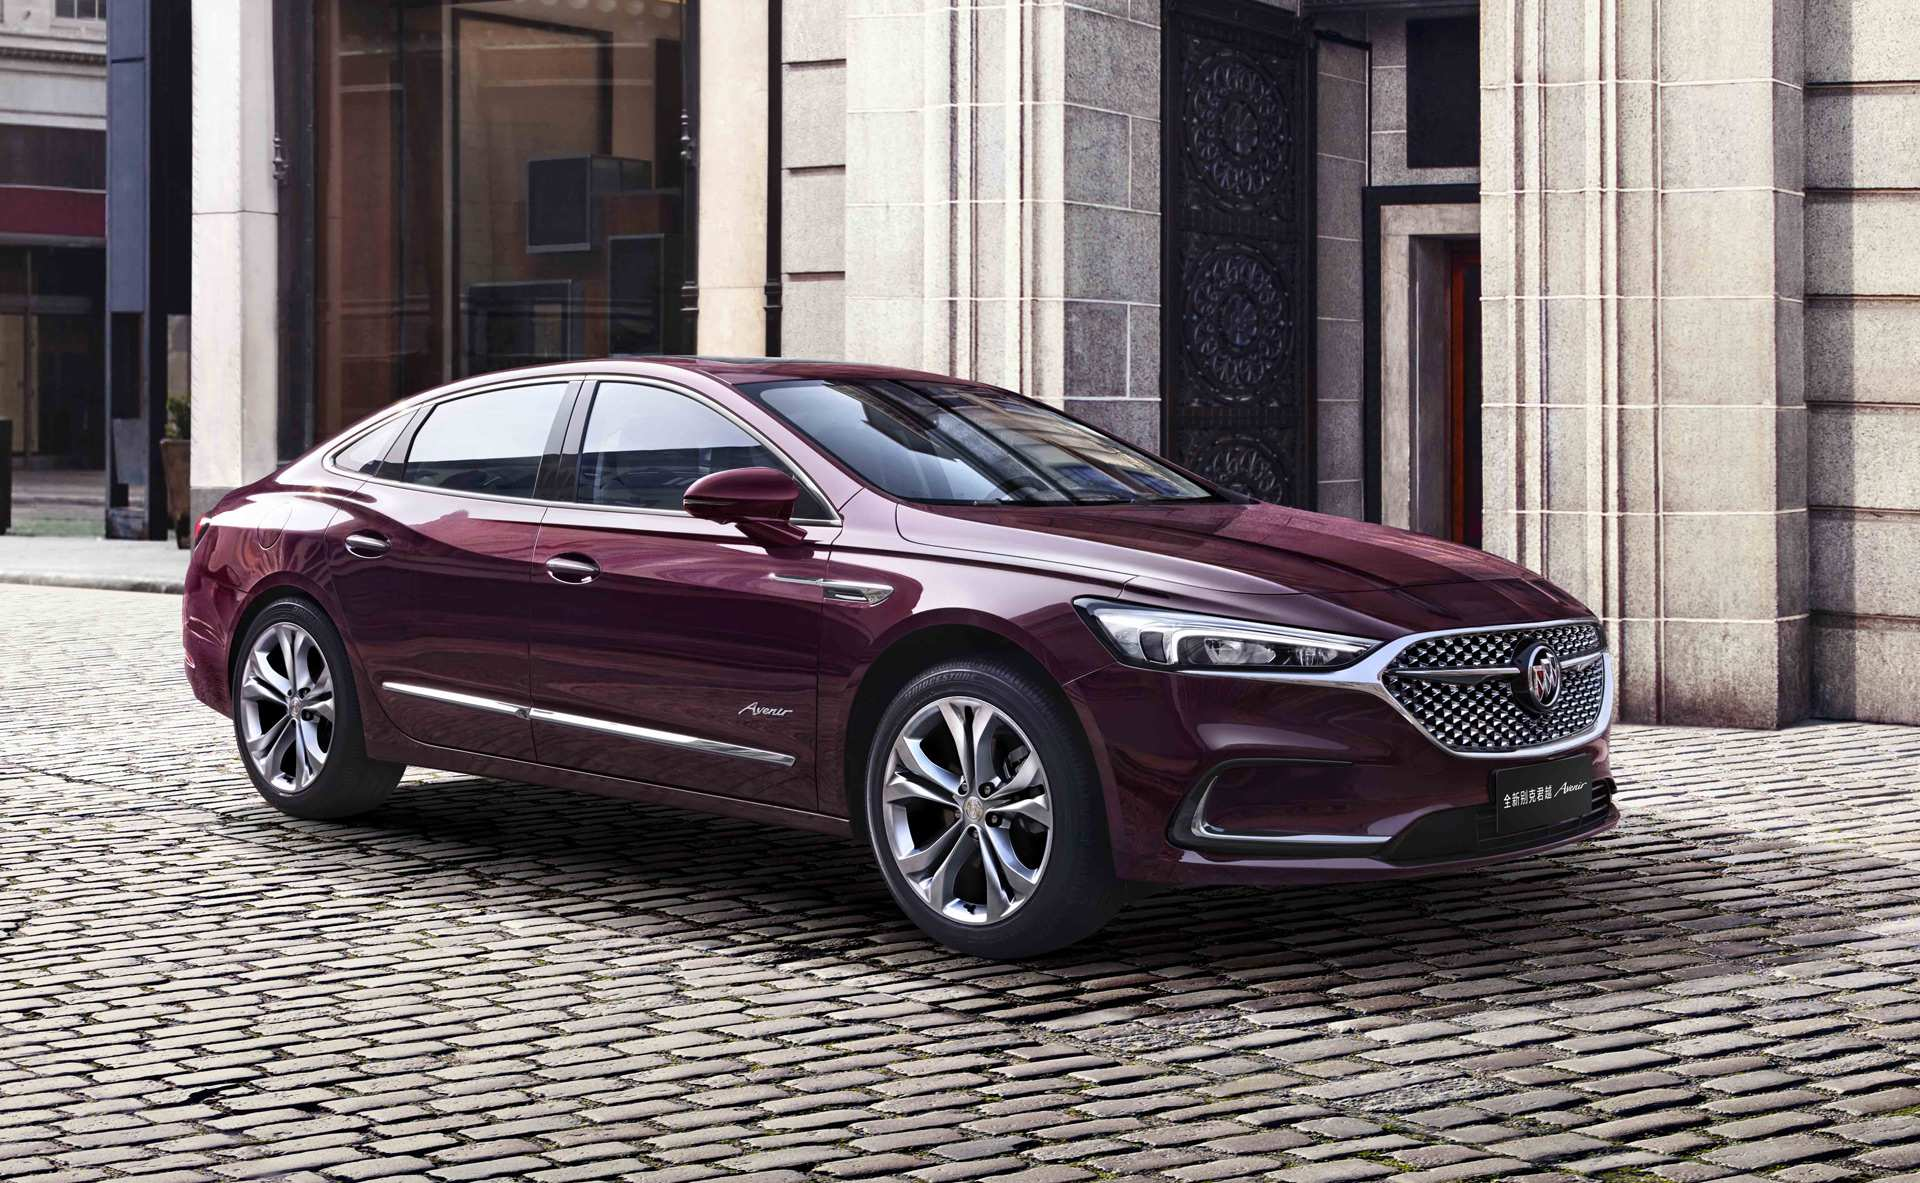 13 New Will There Be A 2020 Buick Lacrosse Exterior